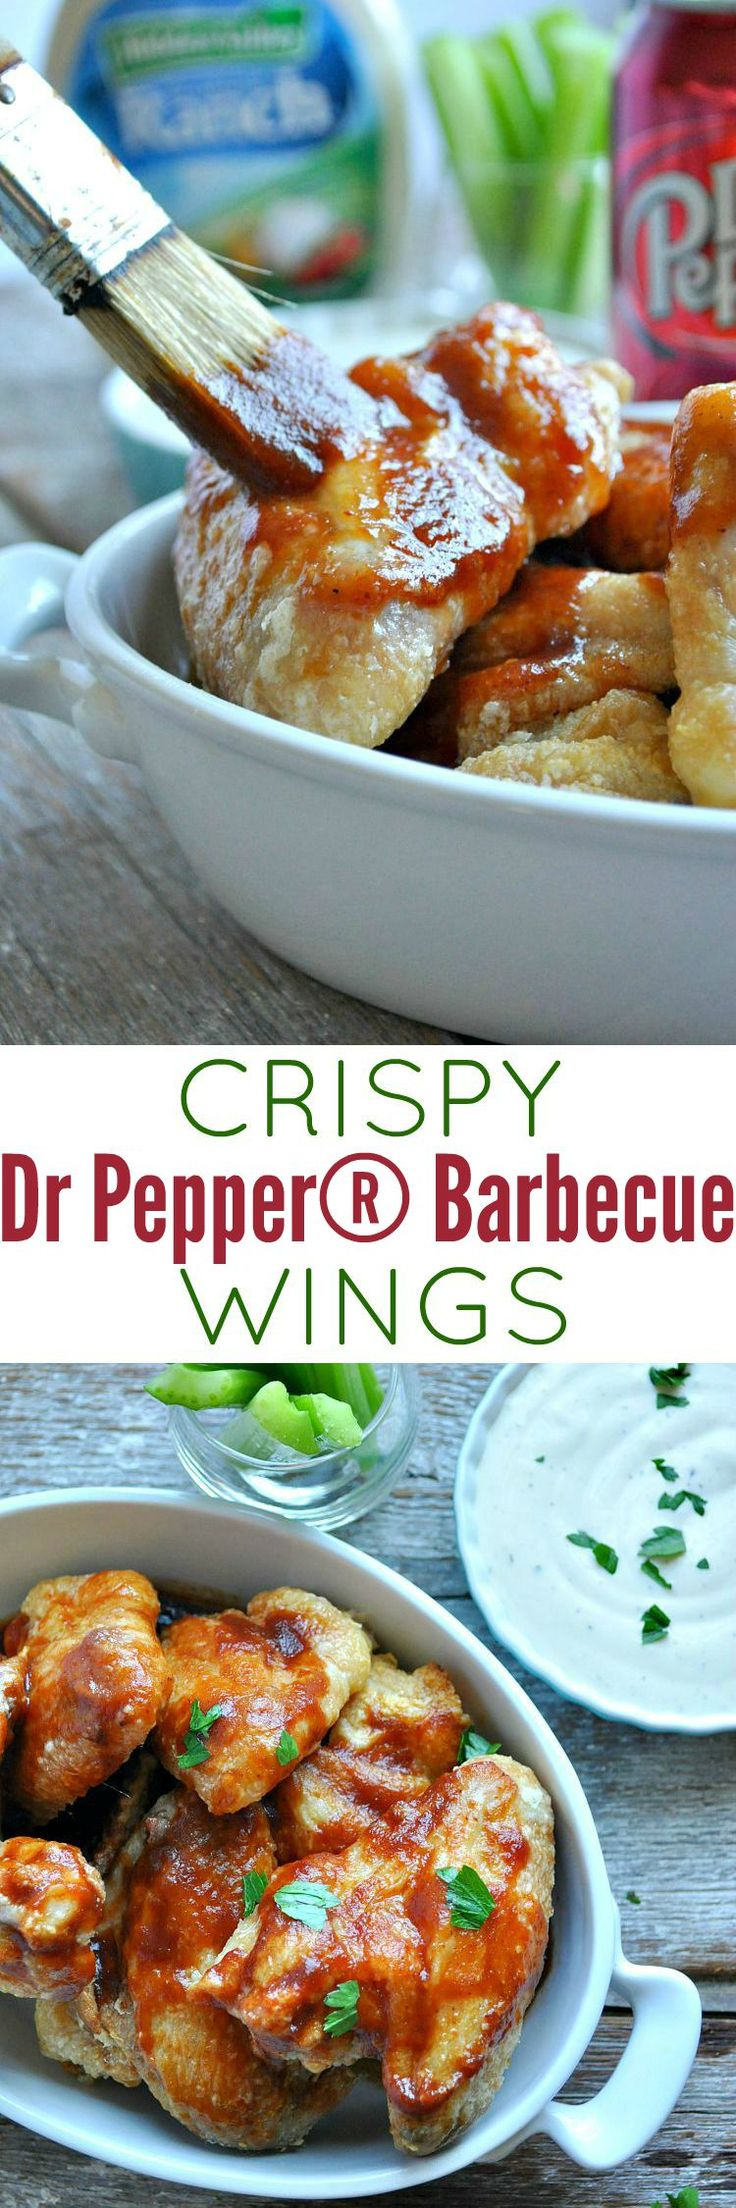 These Crispy Dr Pepper® Barbecue Wings are the perfect appetizer or tailgate food for all of your festivities this season! #ad